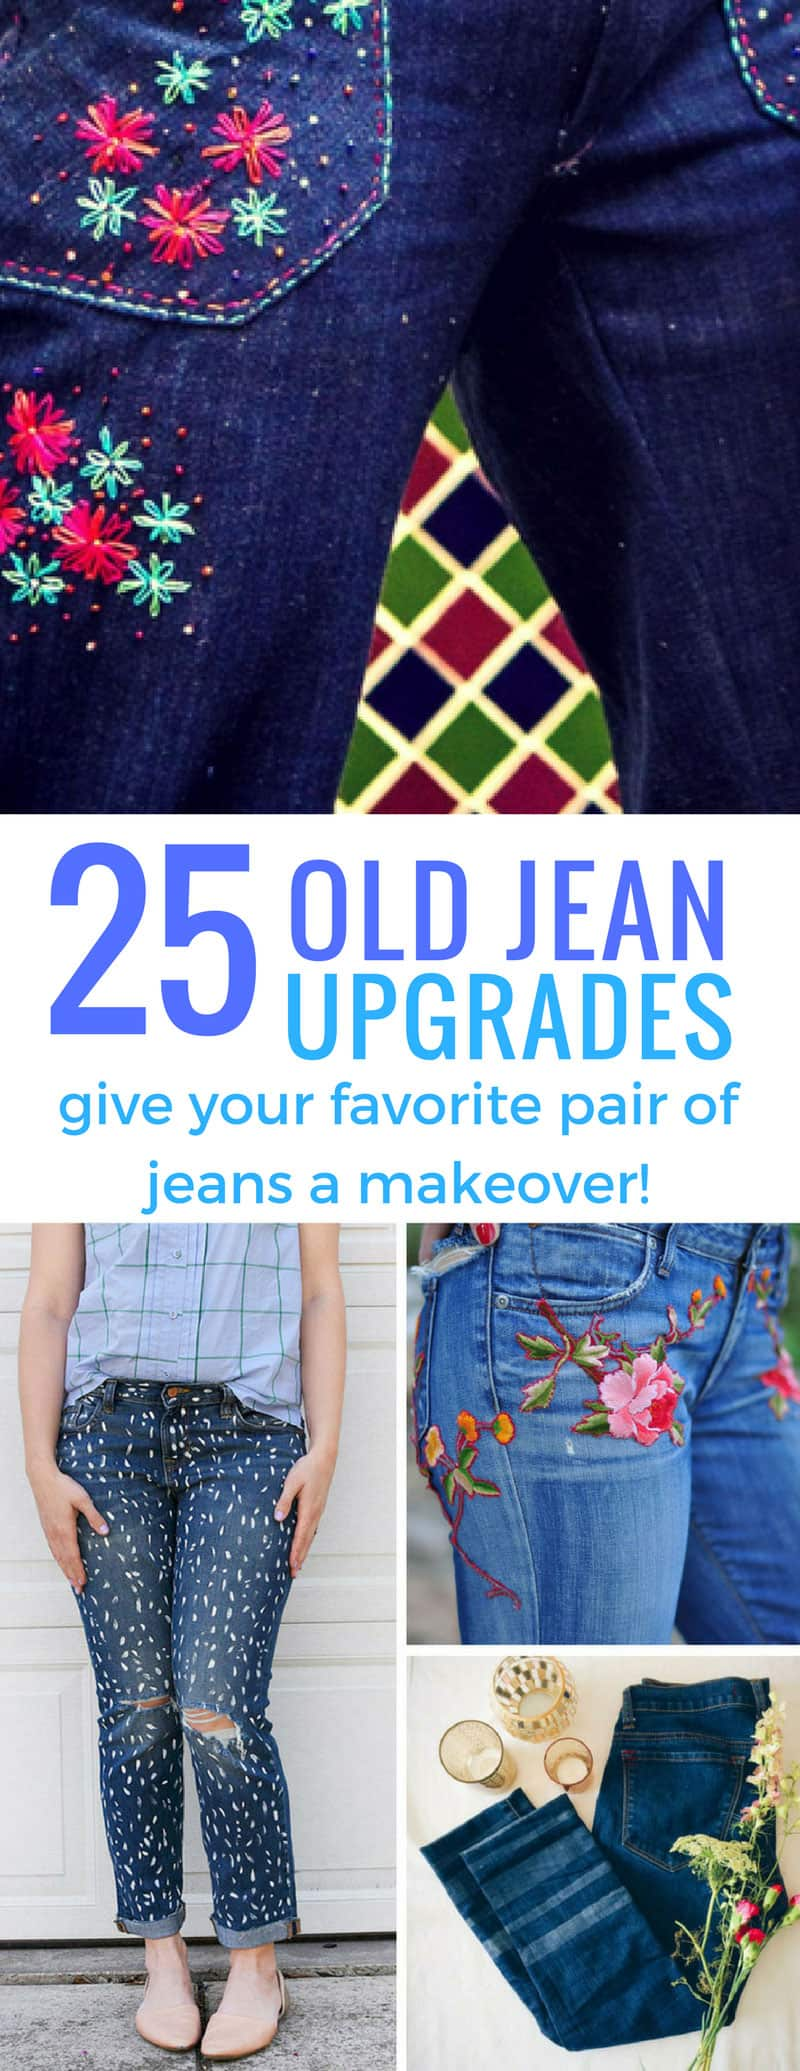 These jean refashion ideas are brilliant if you can't afford a designer pair - just make your own at home!